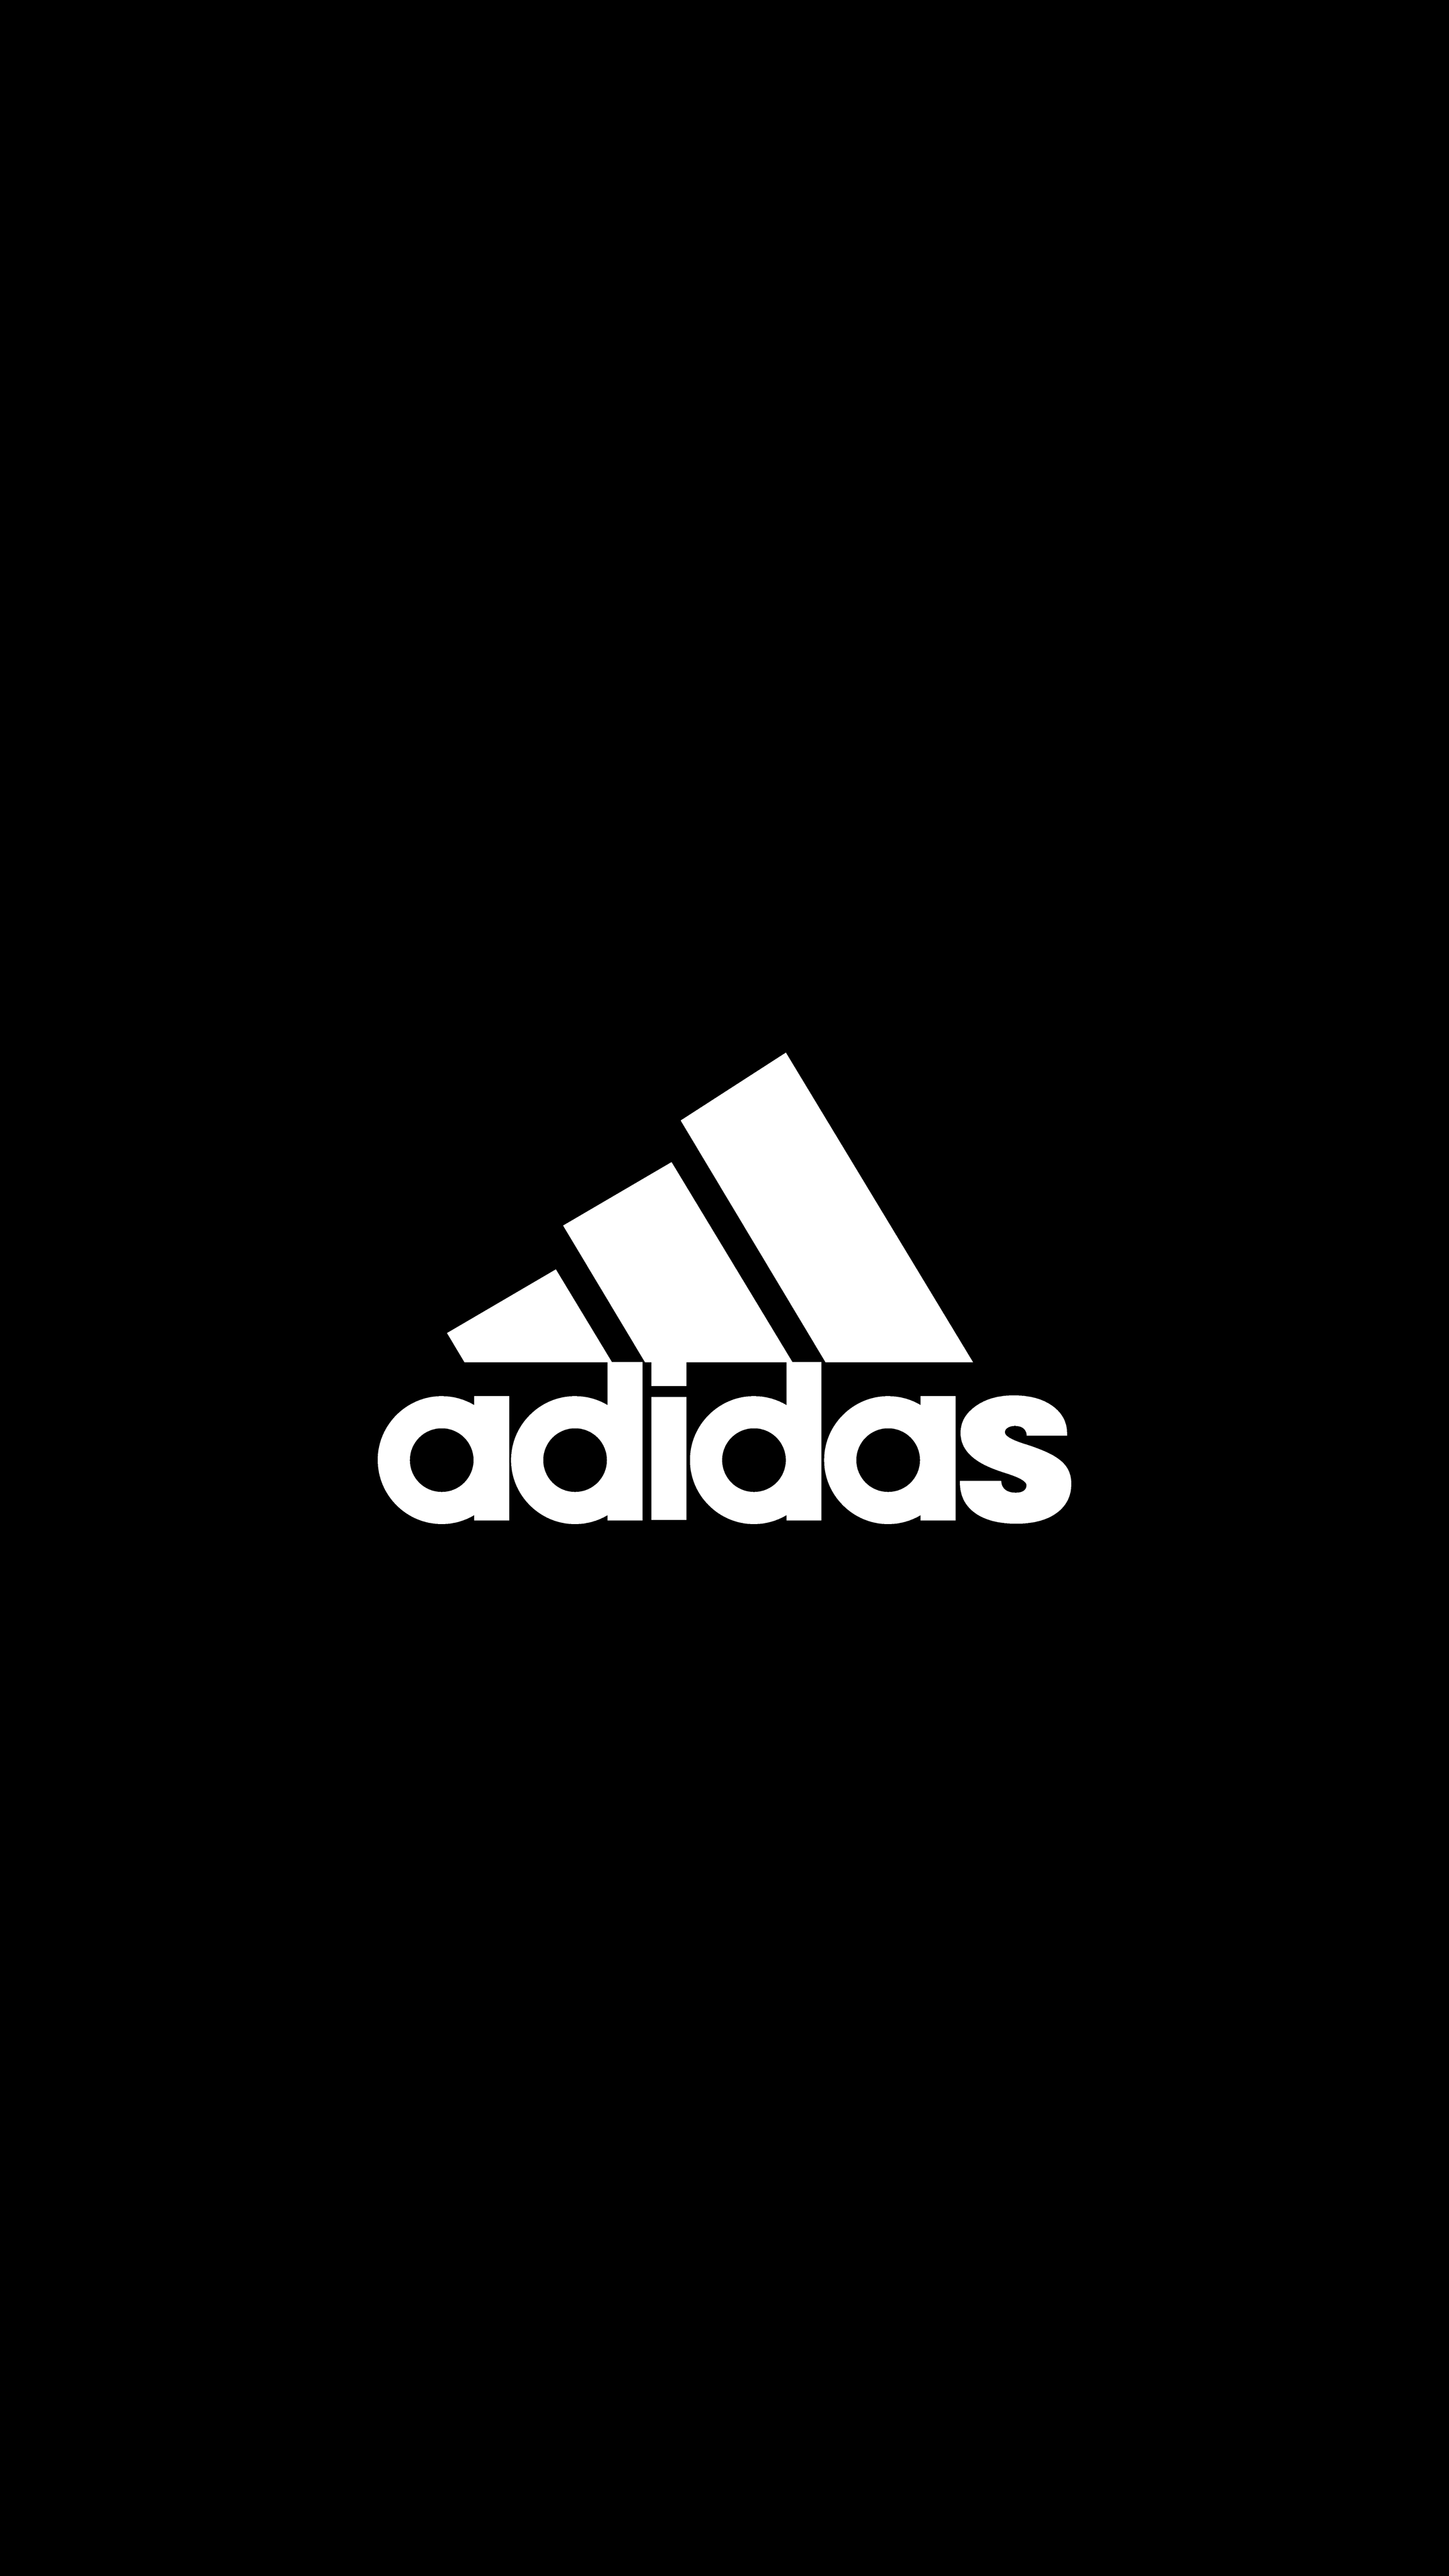 Adidas 2160p/4K OLED Wallpaper